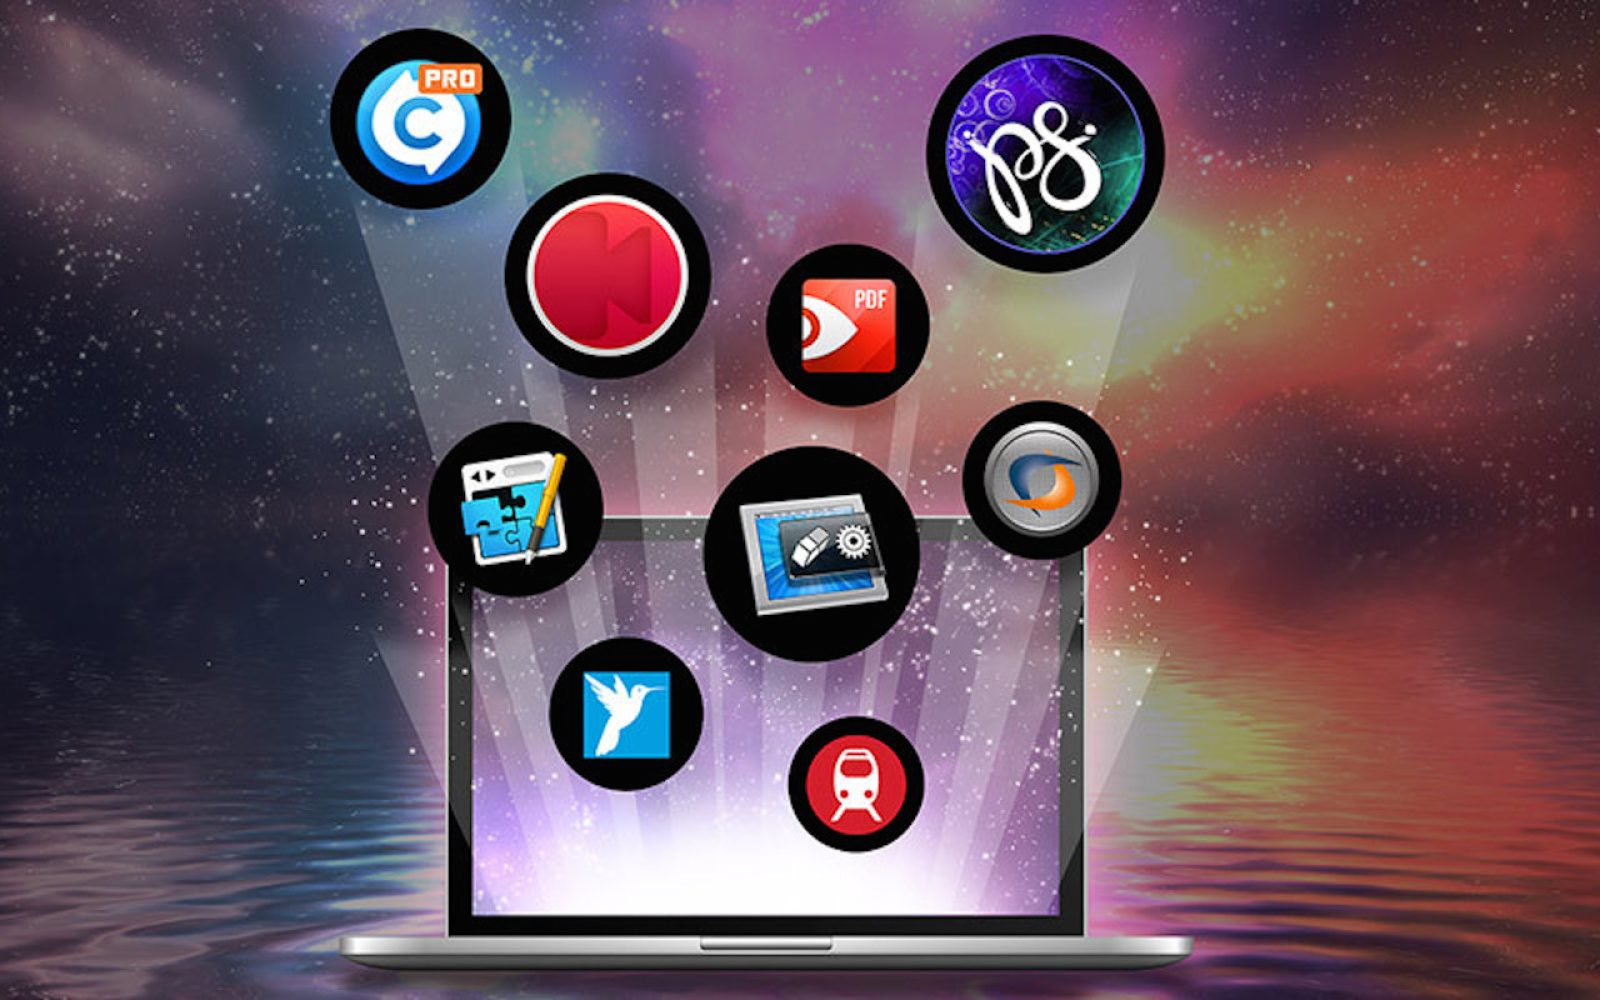 2 Awesome Mac bundles: $20 each, 60 apps, choose wisely